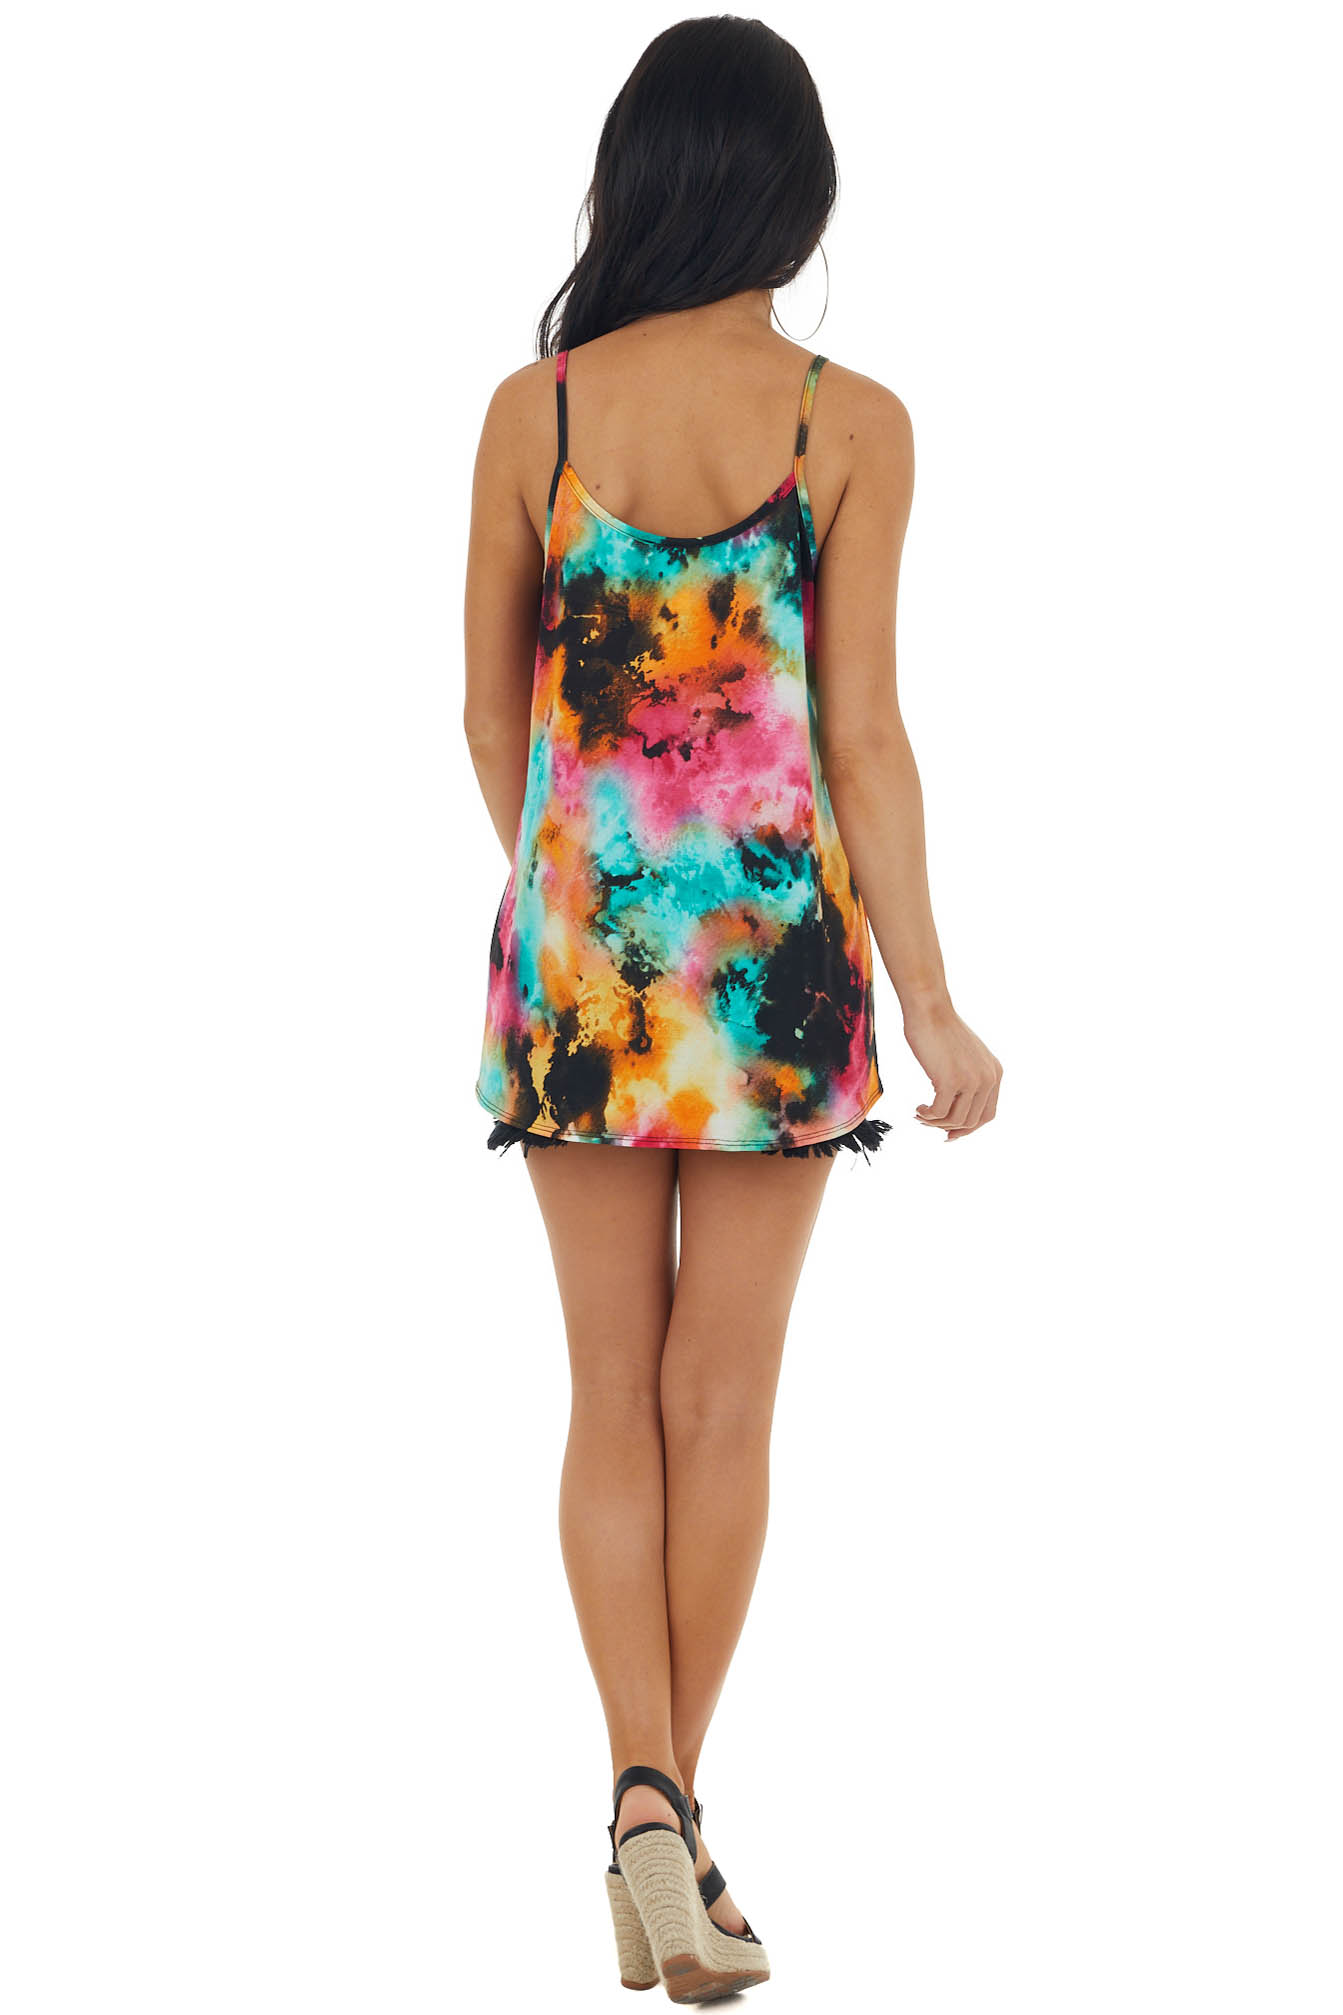 Neon Orange Abstract Tie Dye Tank Top with Strappy Neckline